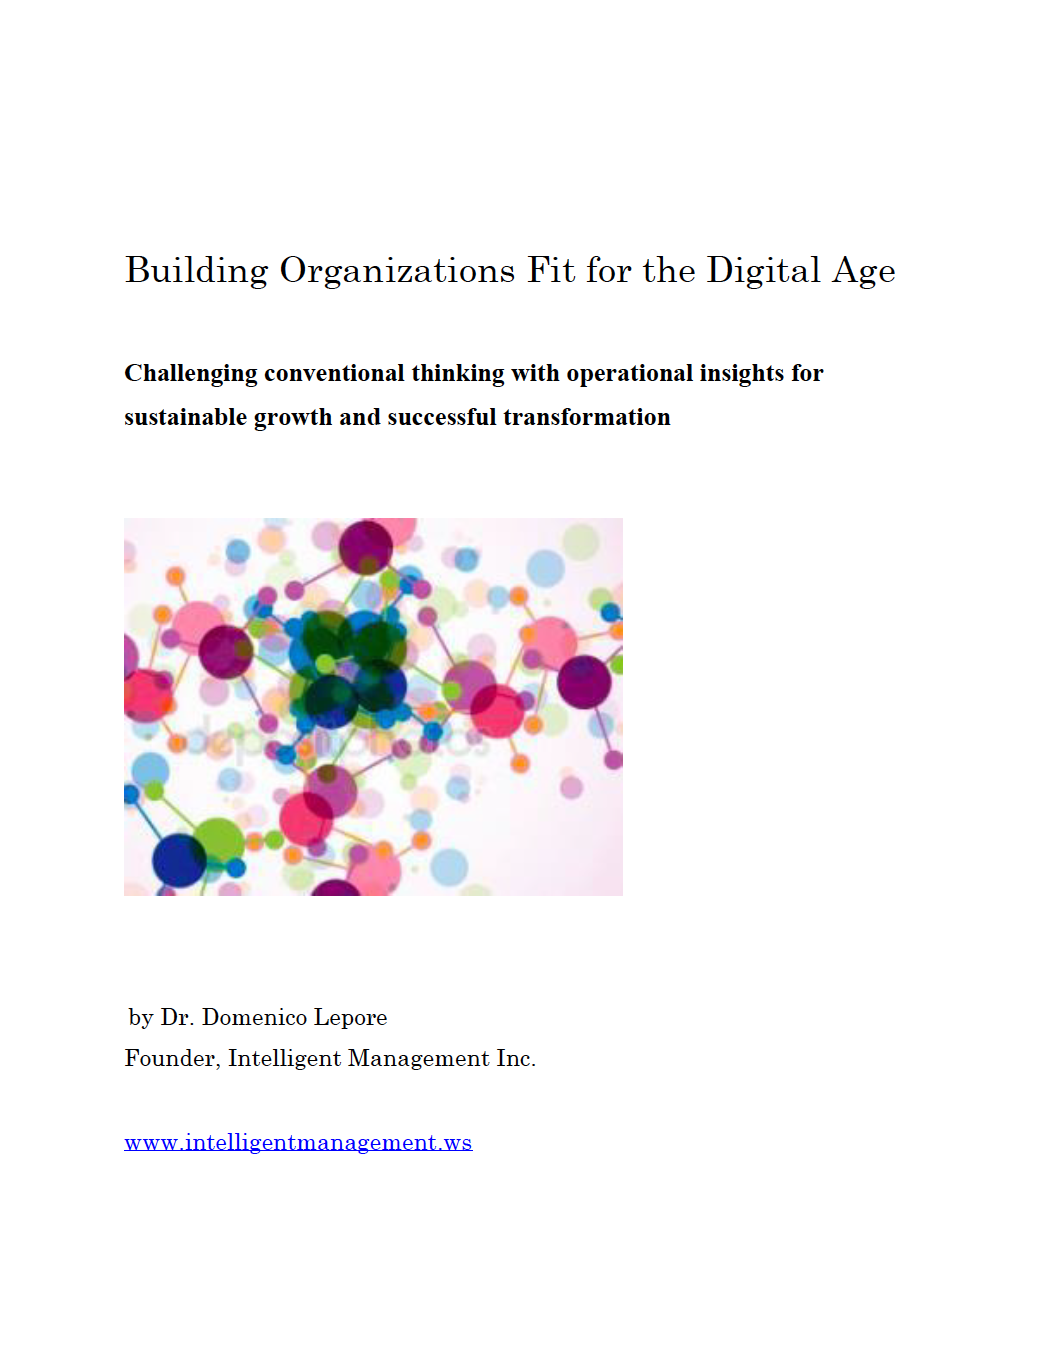 Download our eBOOK 'Building Organizations Fit for the Digital Age'